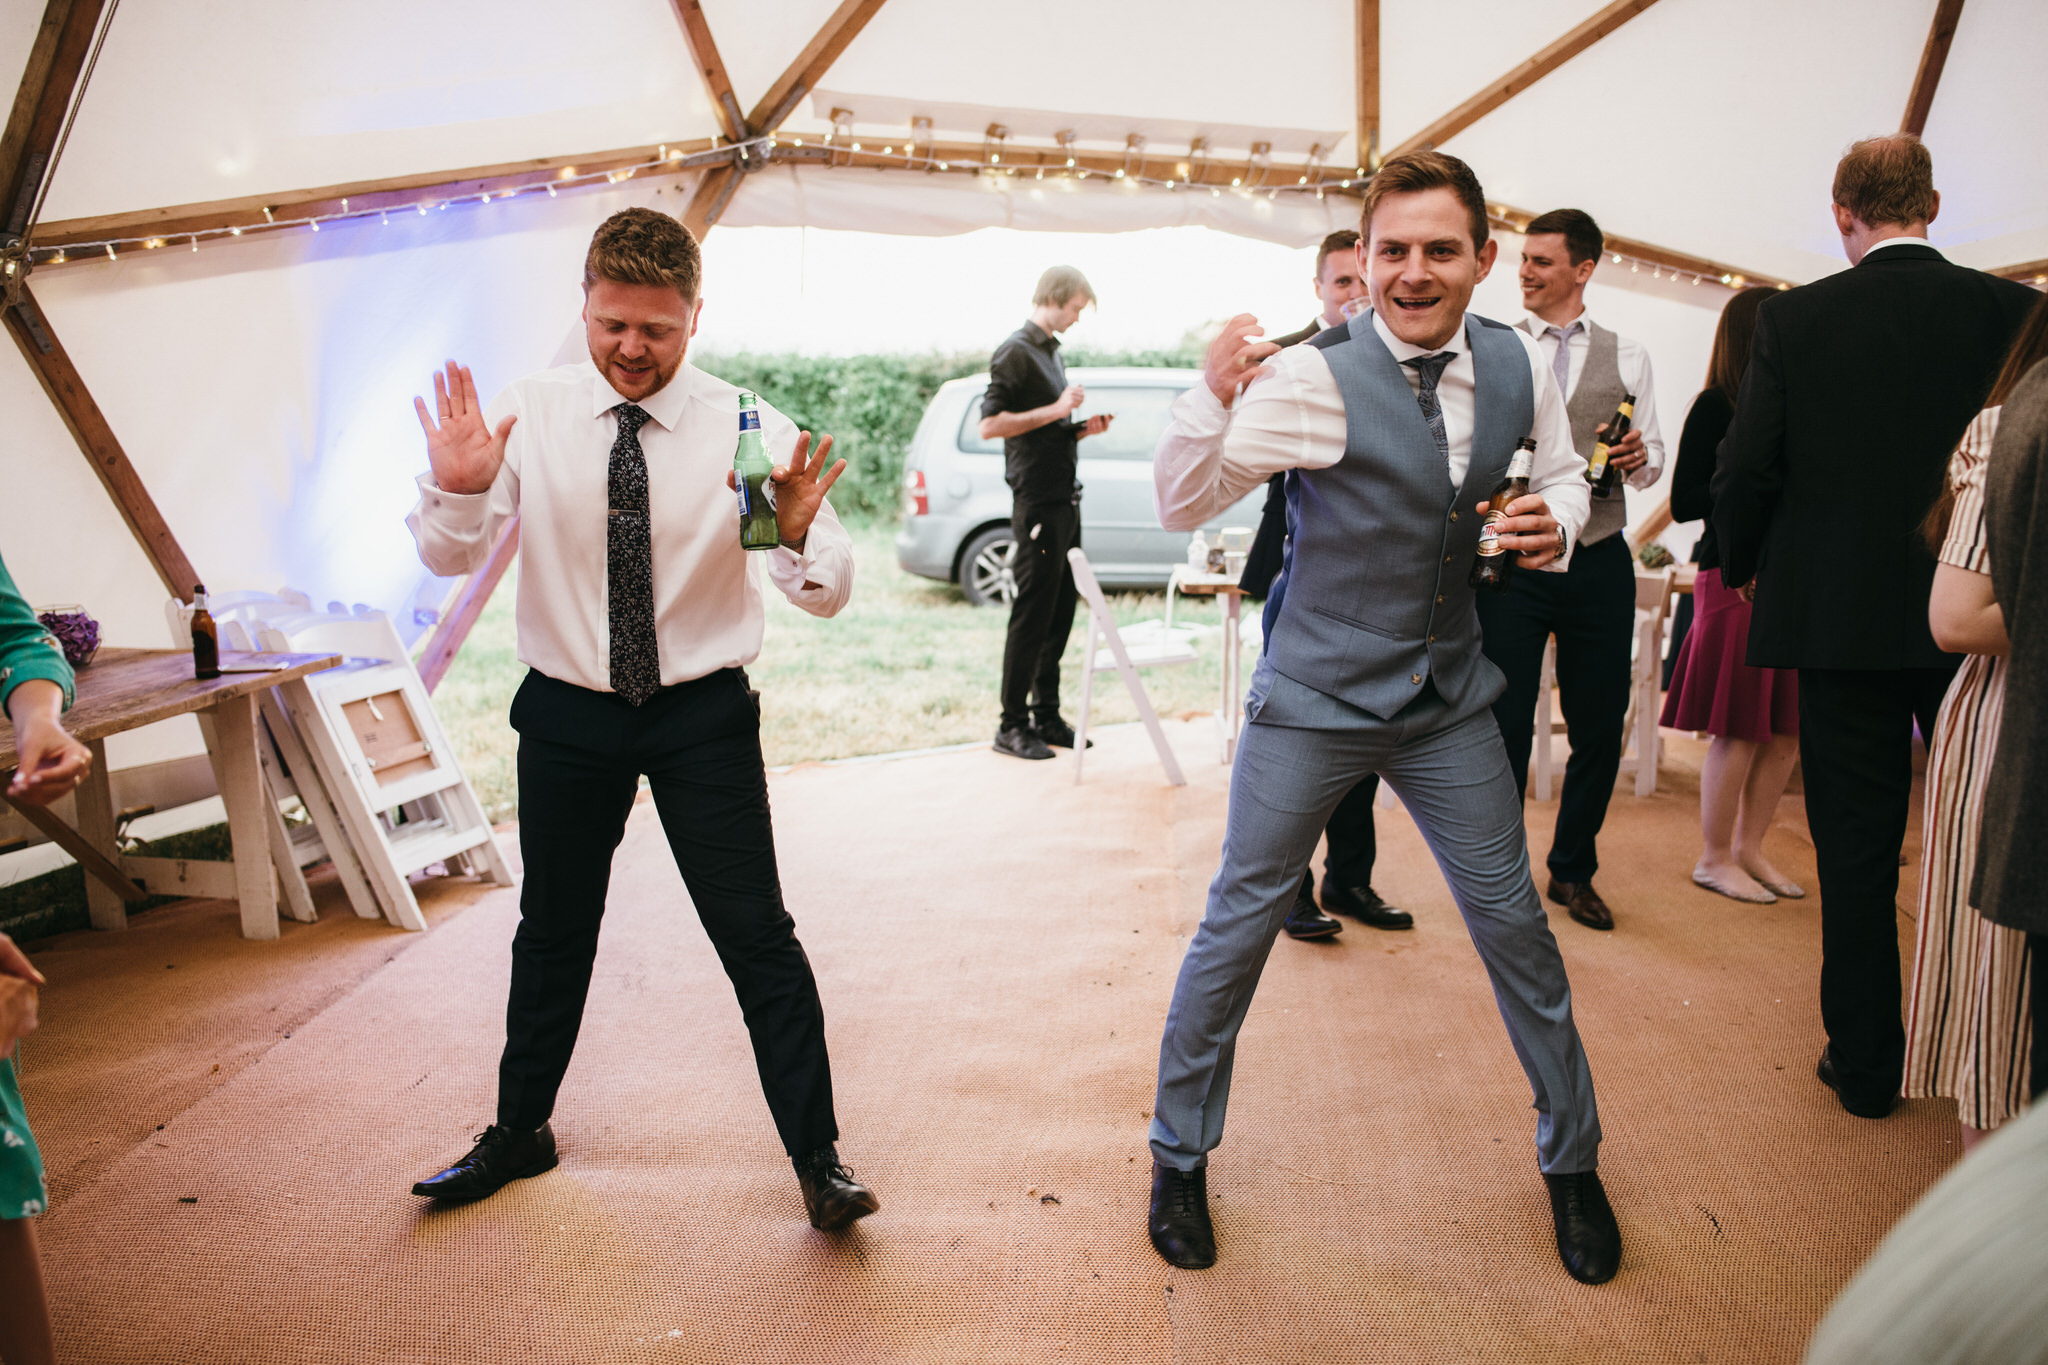 Outdoor somerset wedding photographer 50